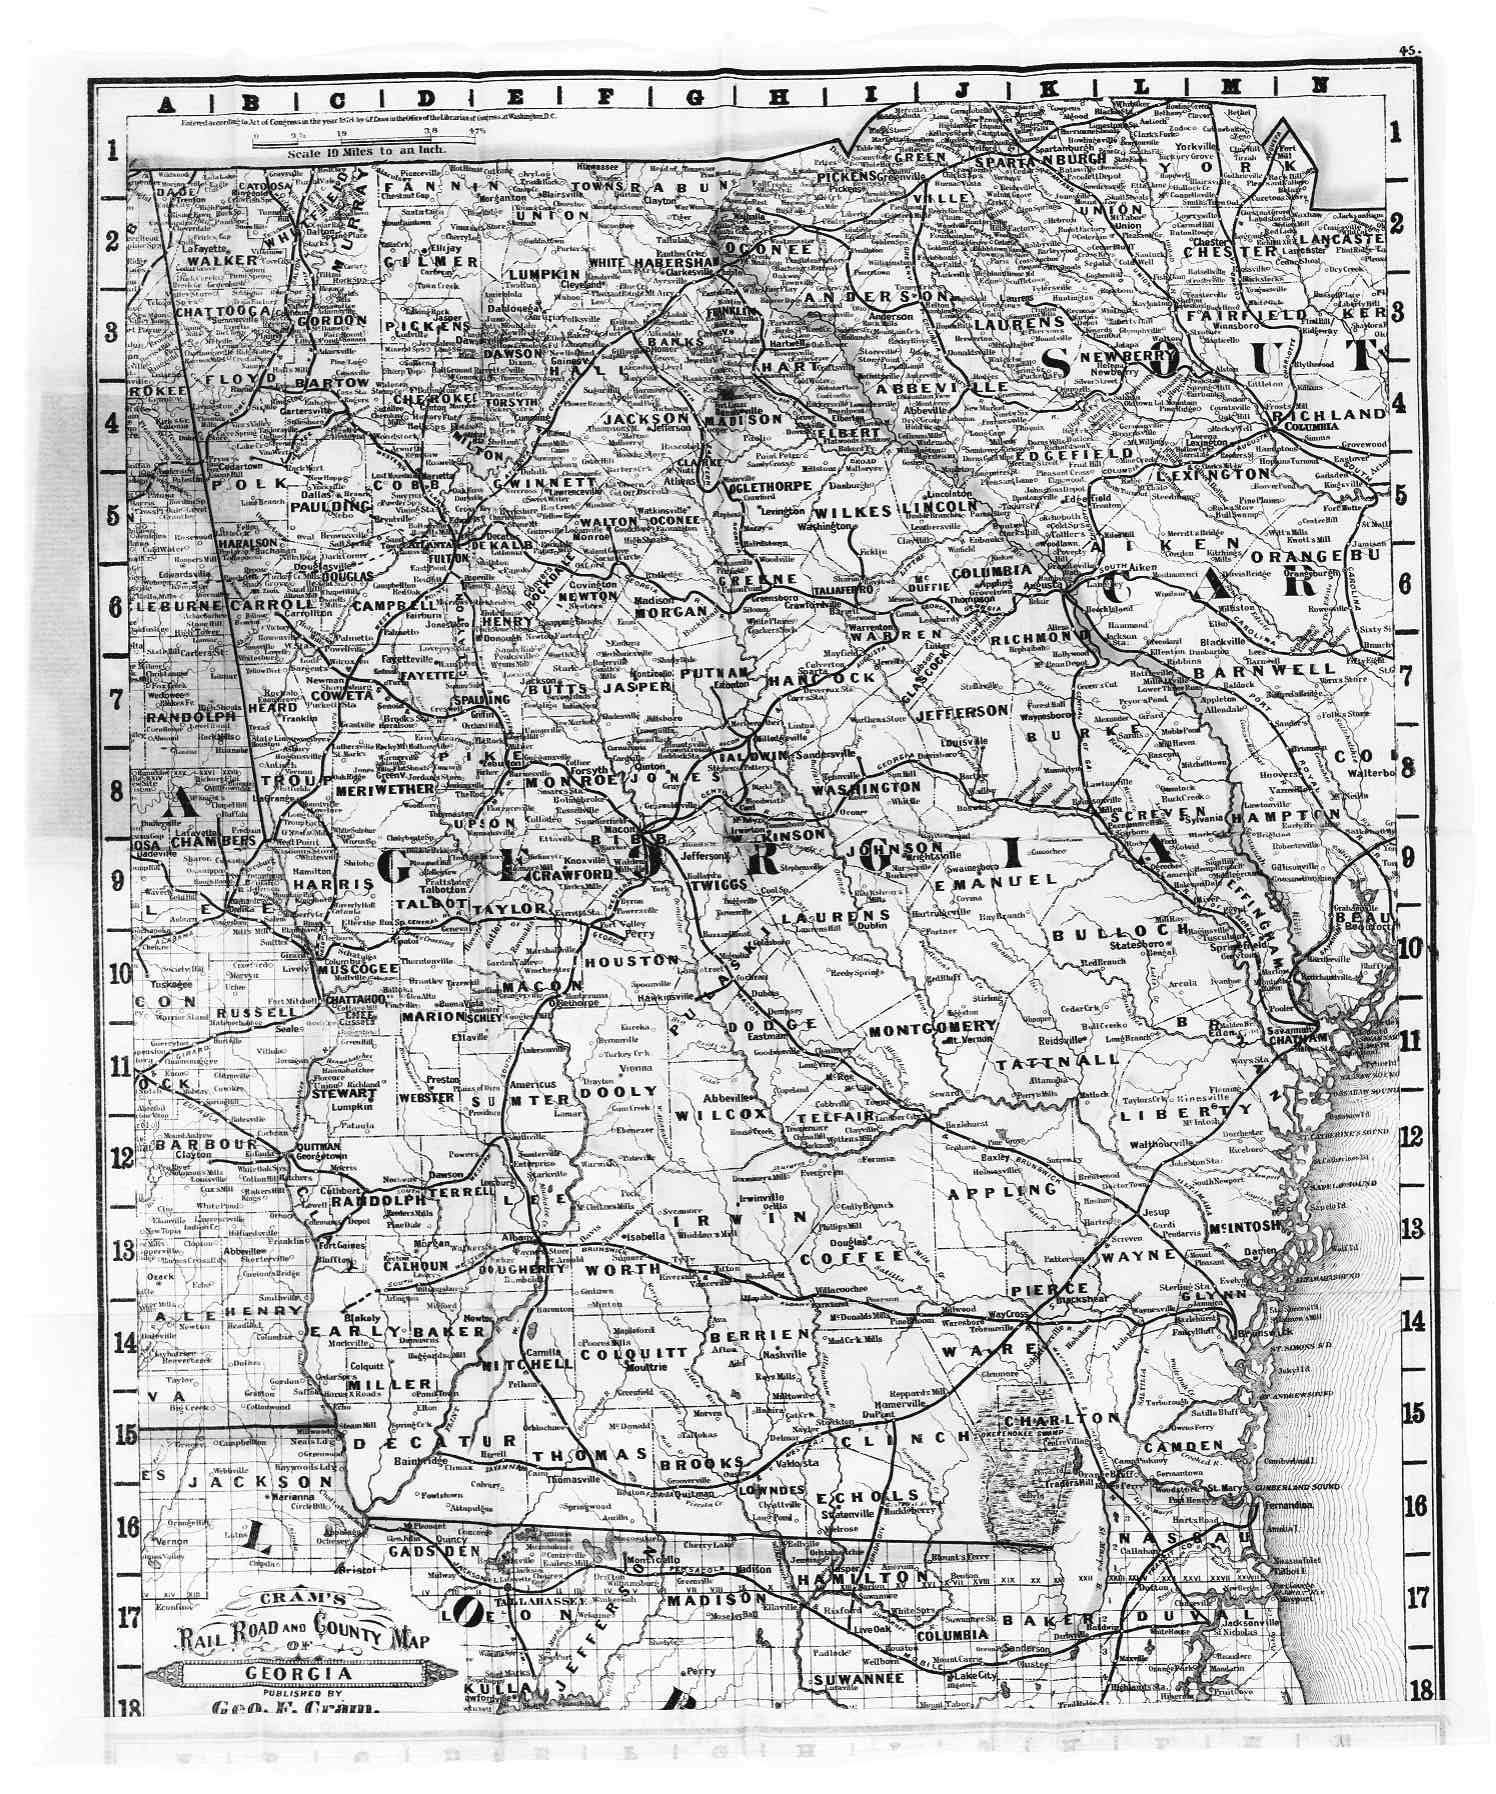 Hargrett Library Rare Map Collection Transportation - Georgia map with county lines